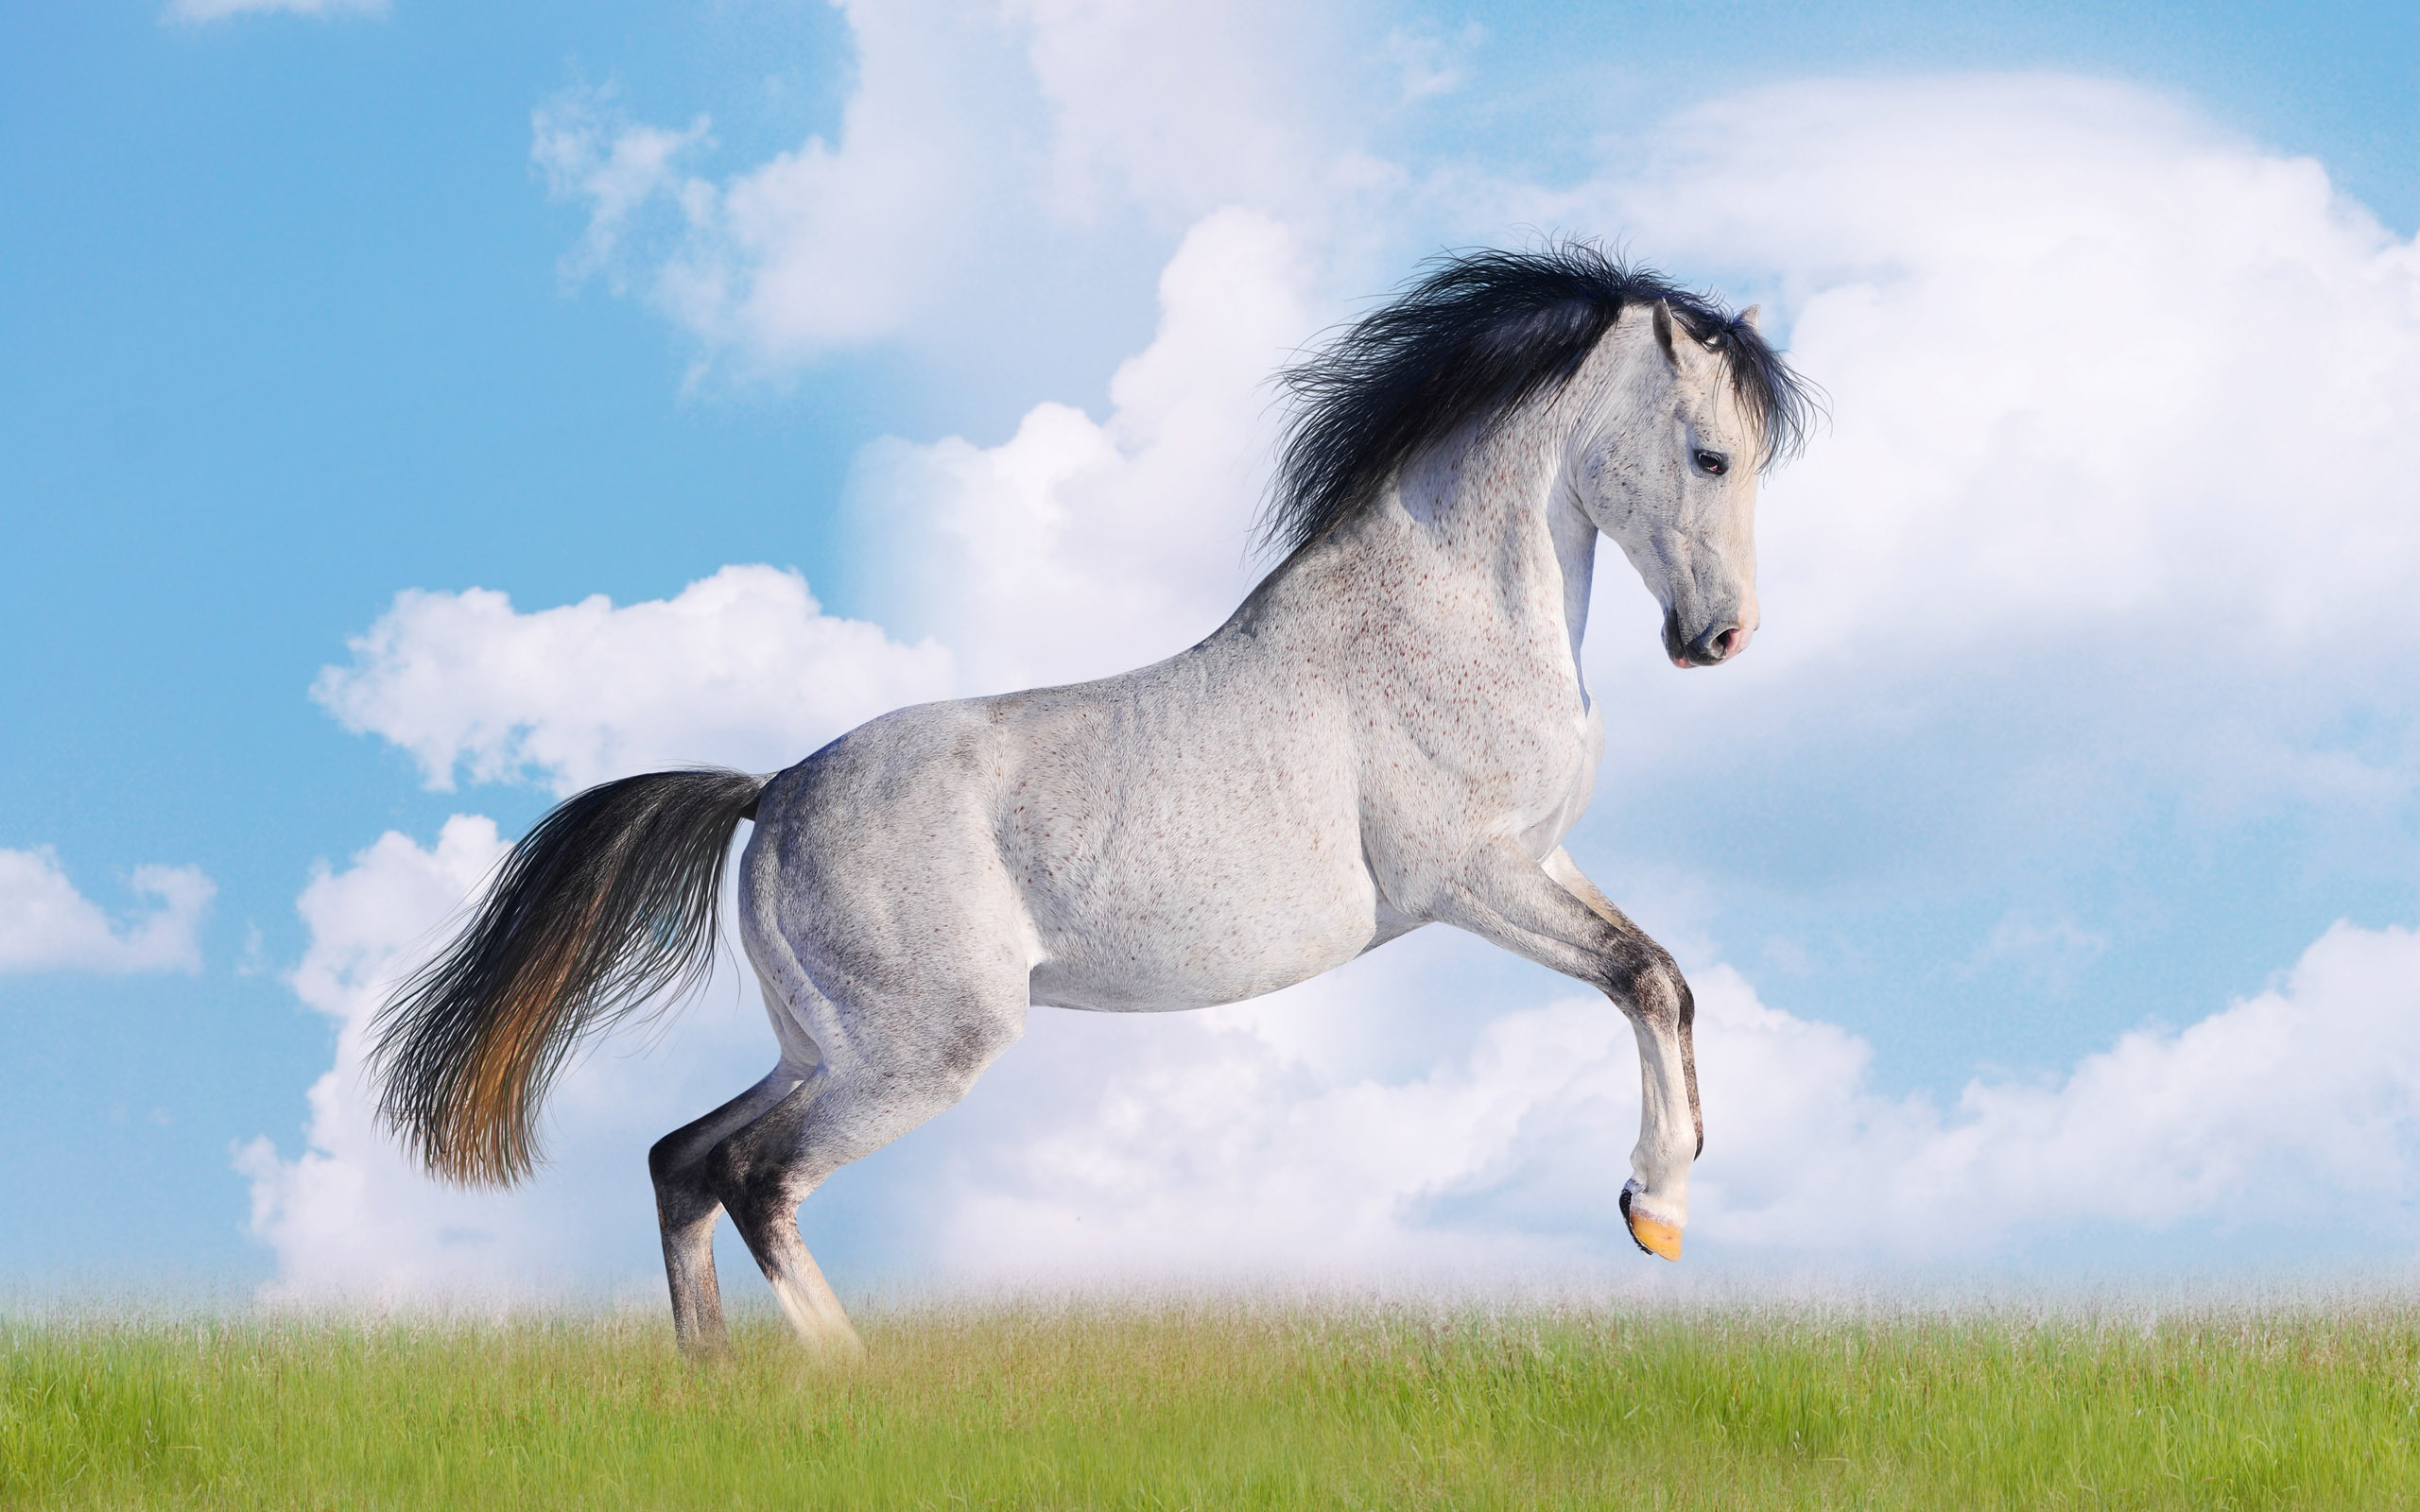 Super Horse Photo Wallpaper 2 20 2560x1600 Wallpaper Download